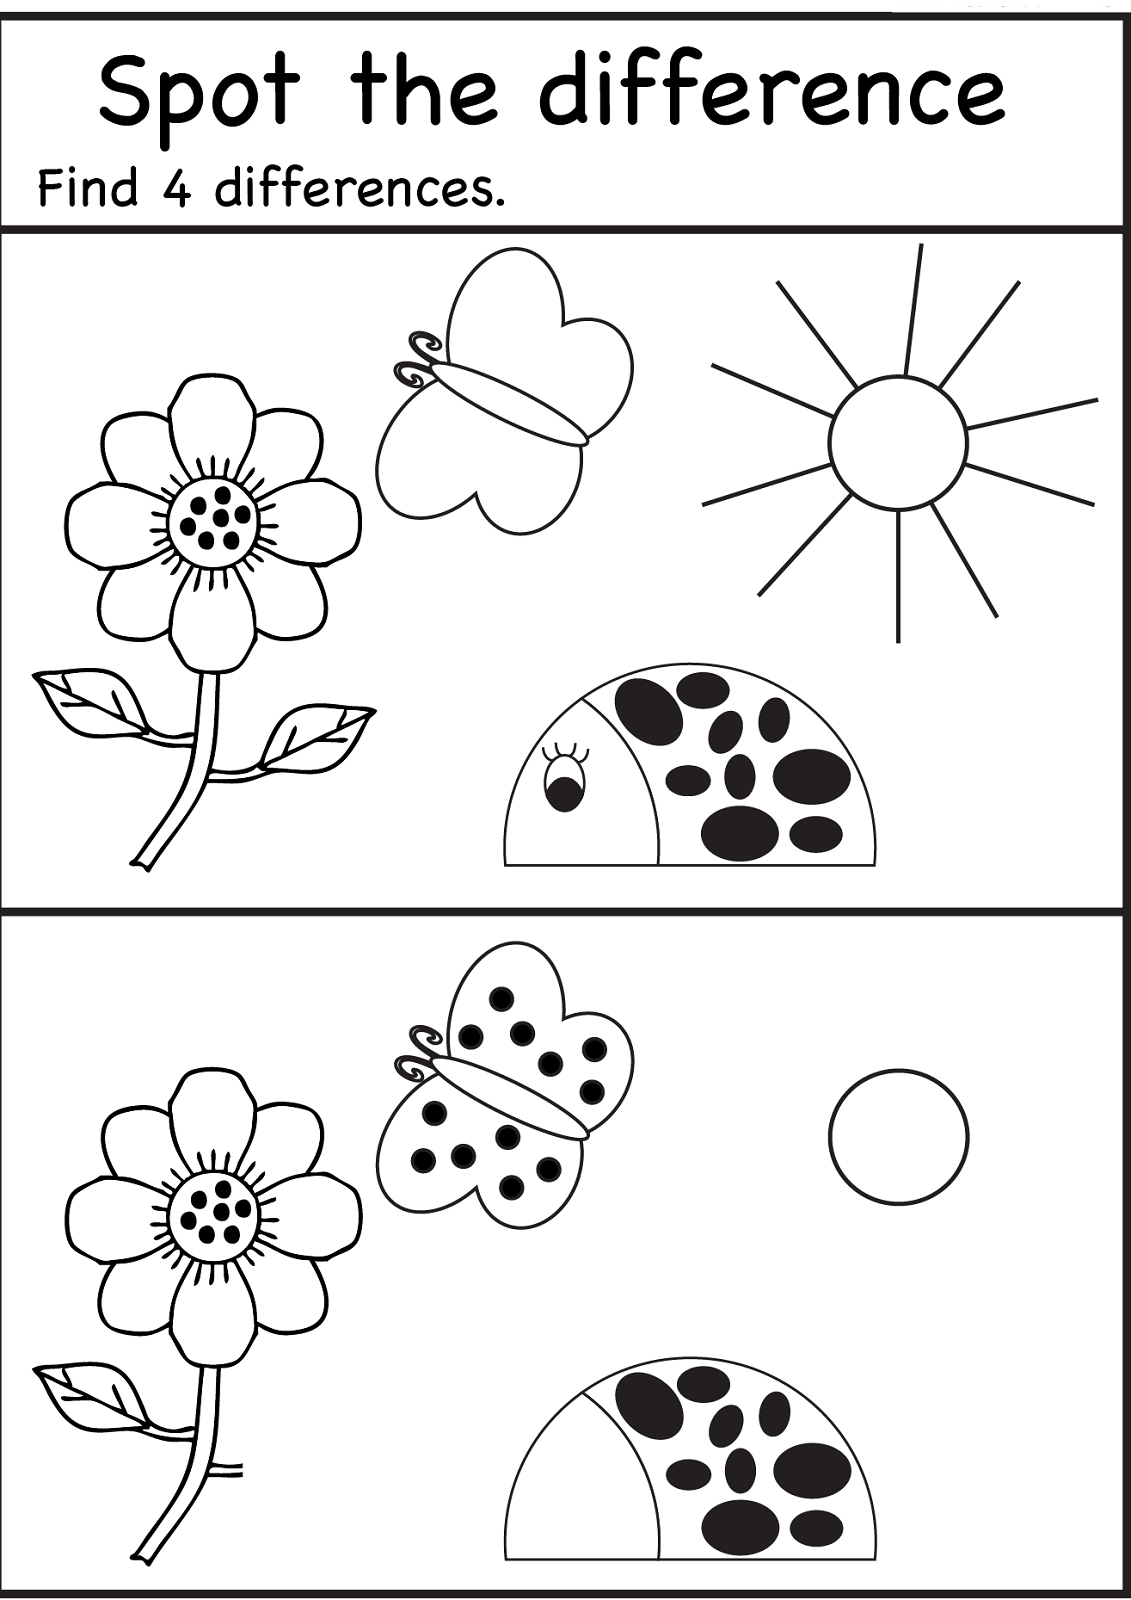 Spot The Difference Worksheets For Kids | Spot The . Games - Free Printable Spot The Difference For Kids